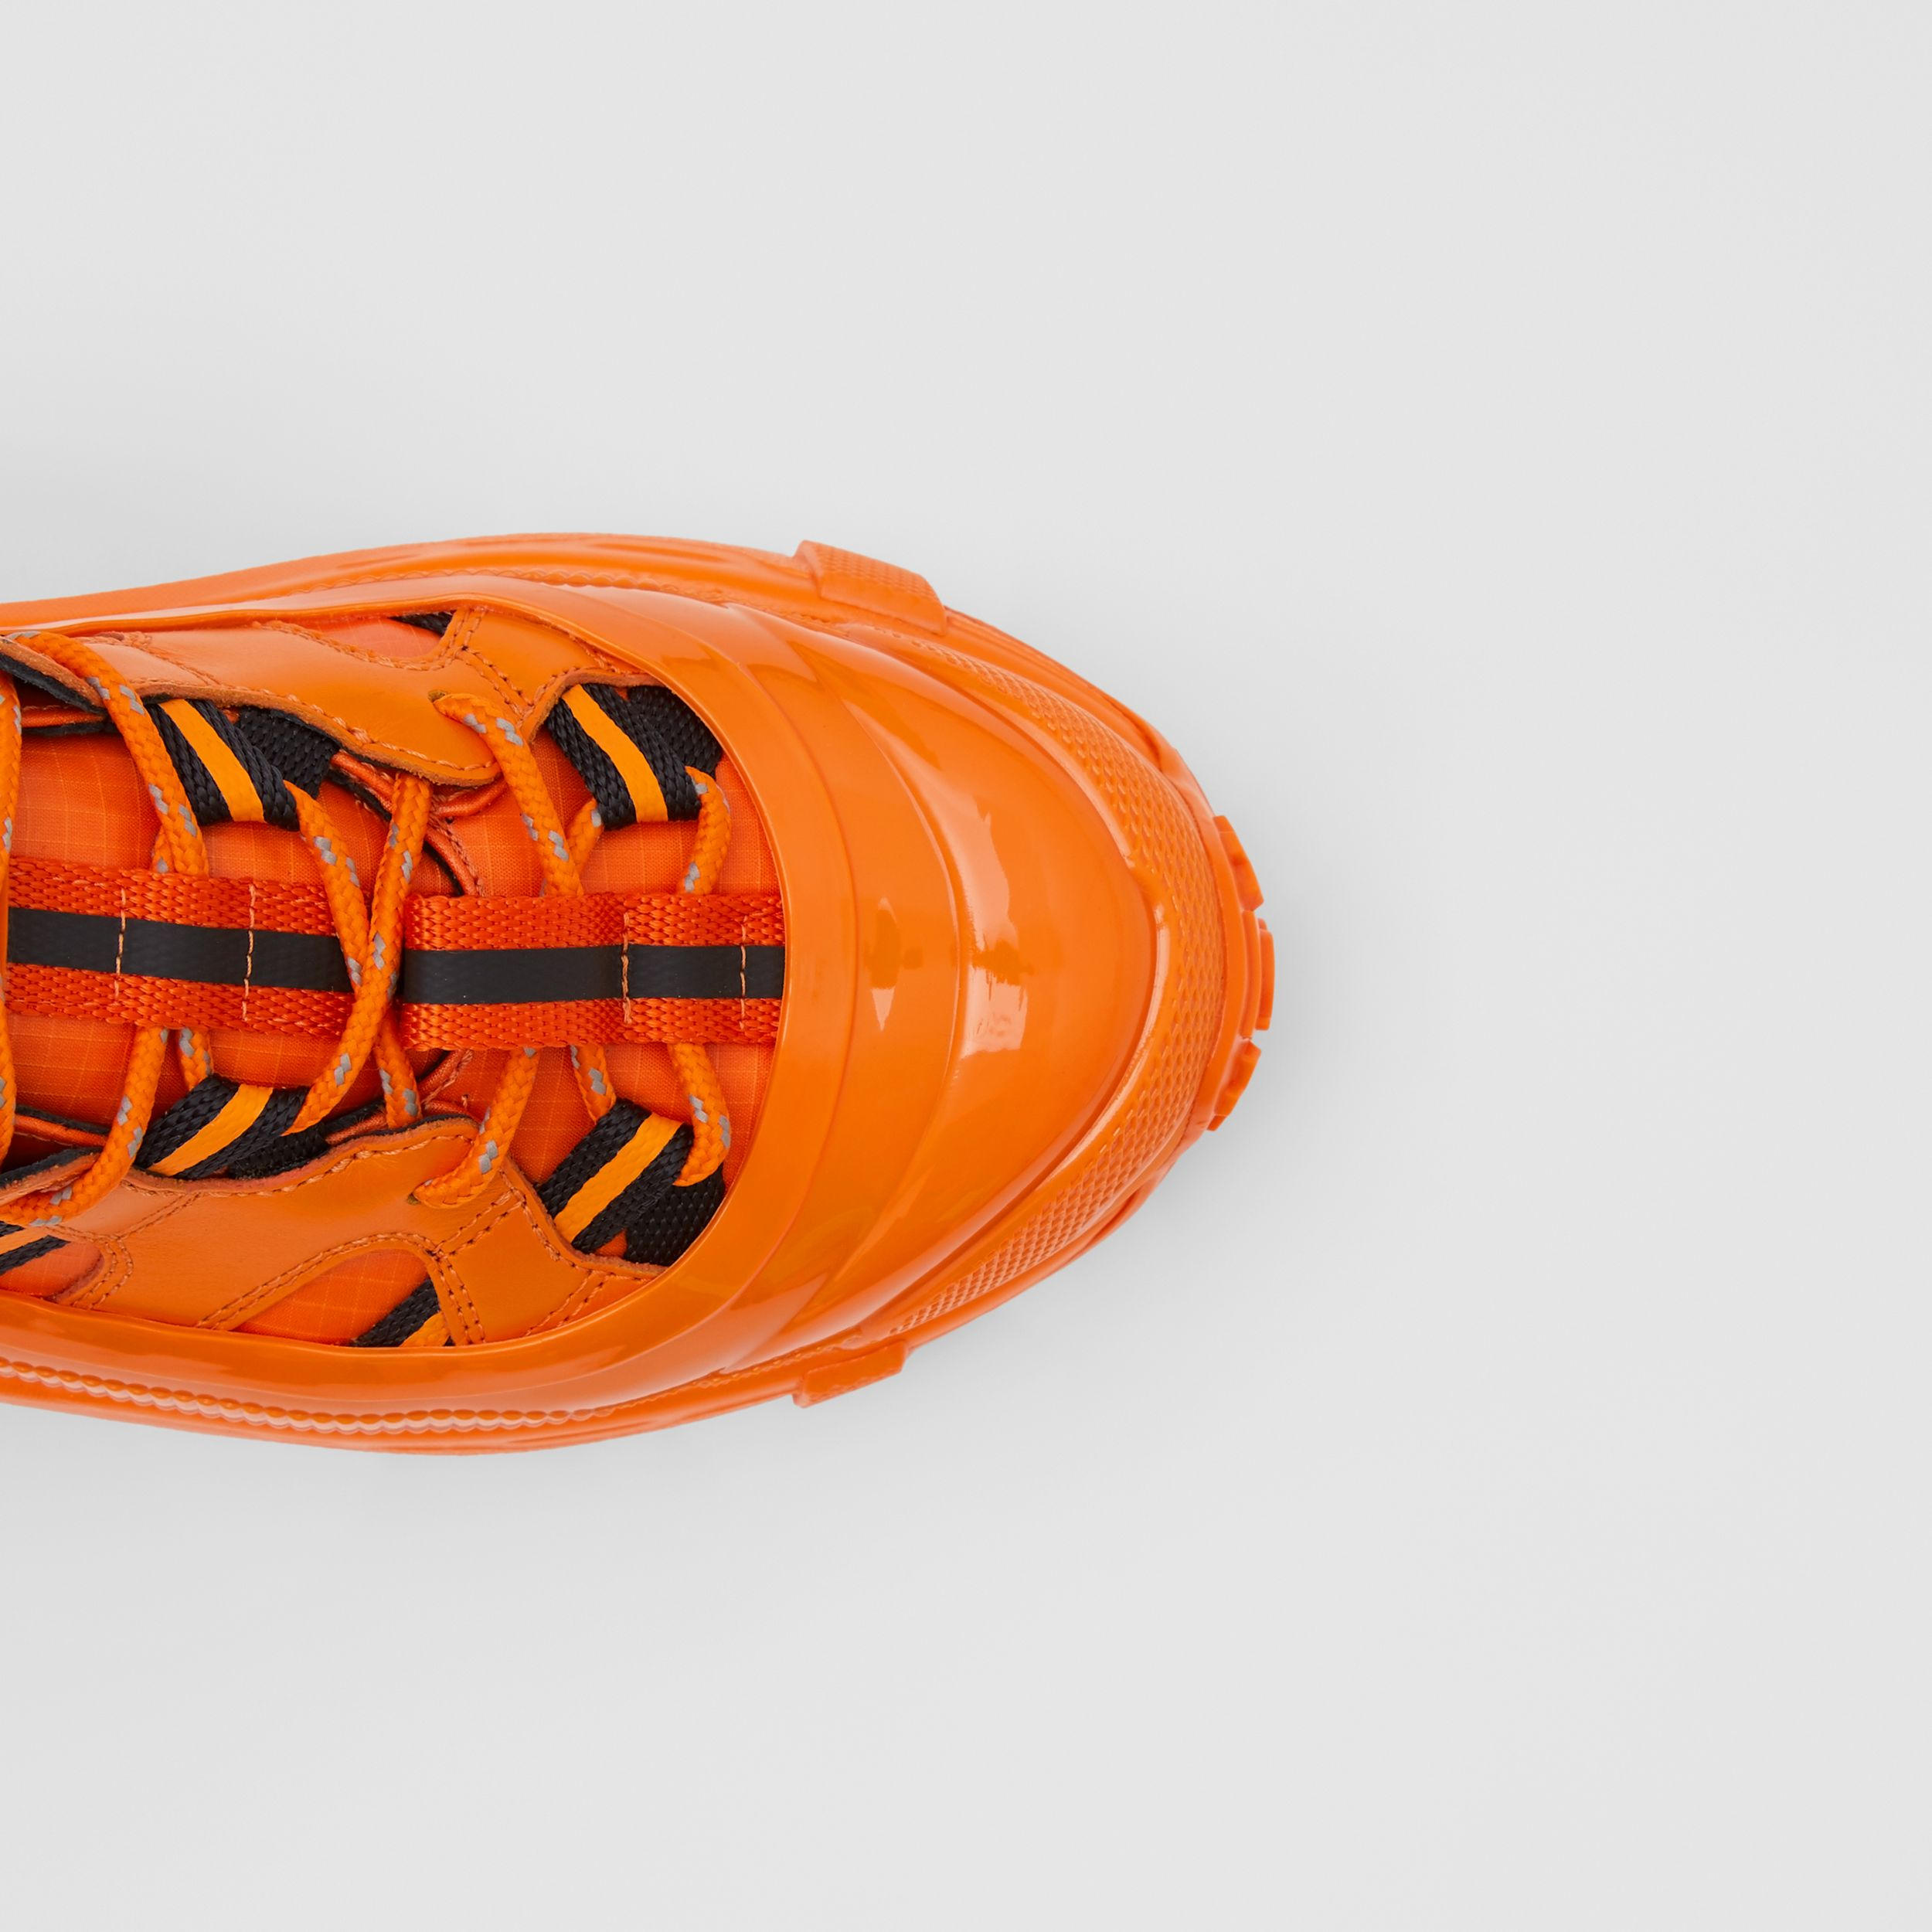 Leather and Nylon Arthur Sneakers in Bright Orange - Women | Burberry - 2